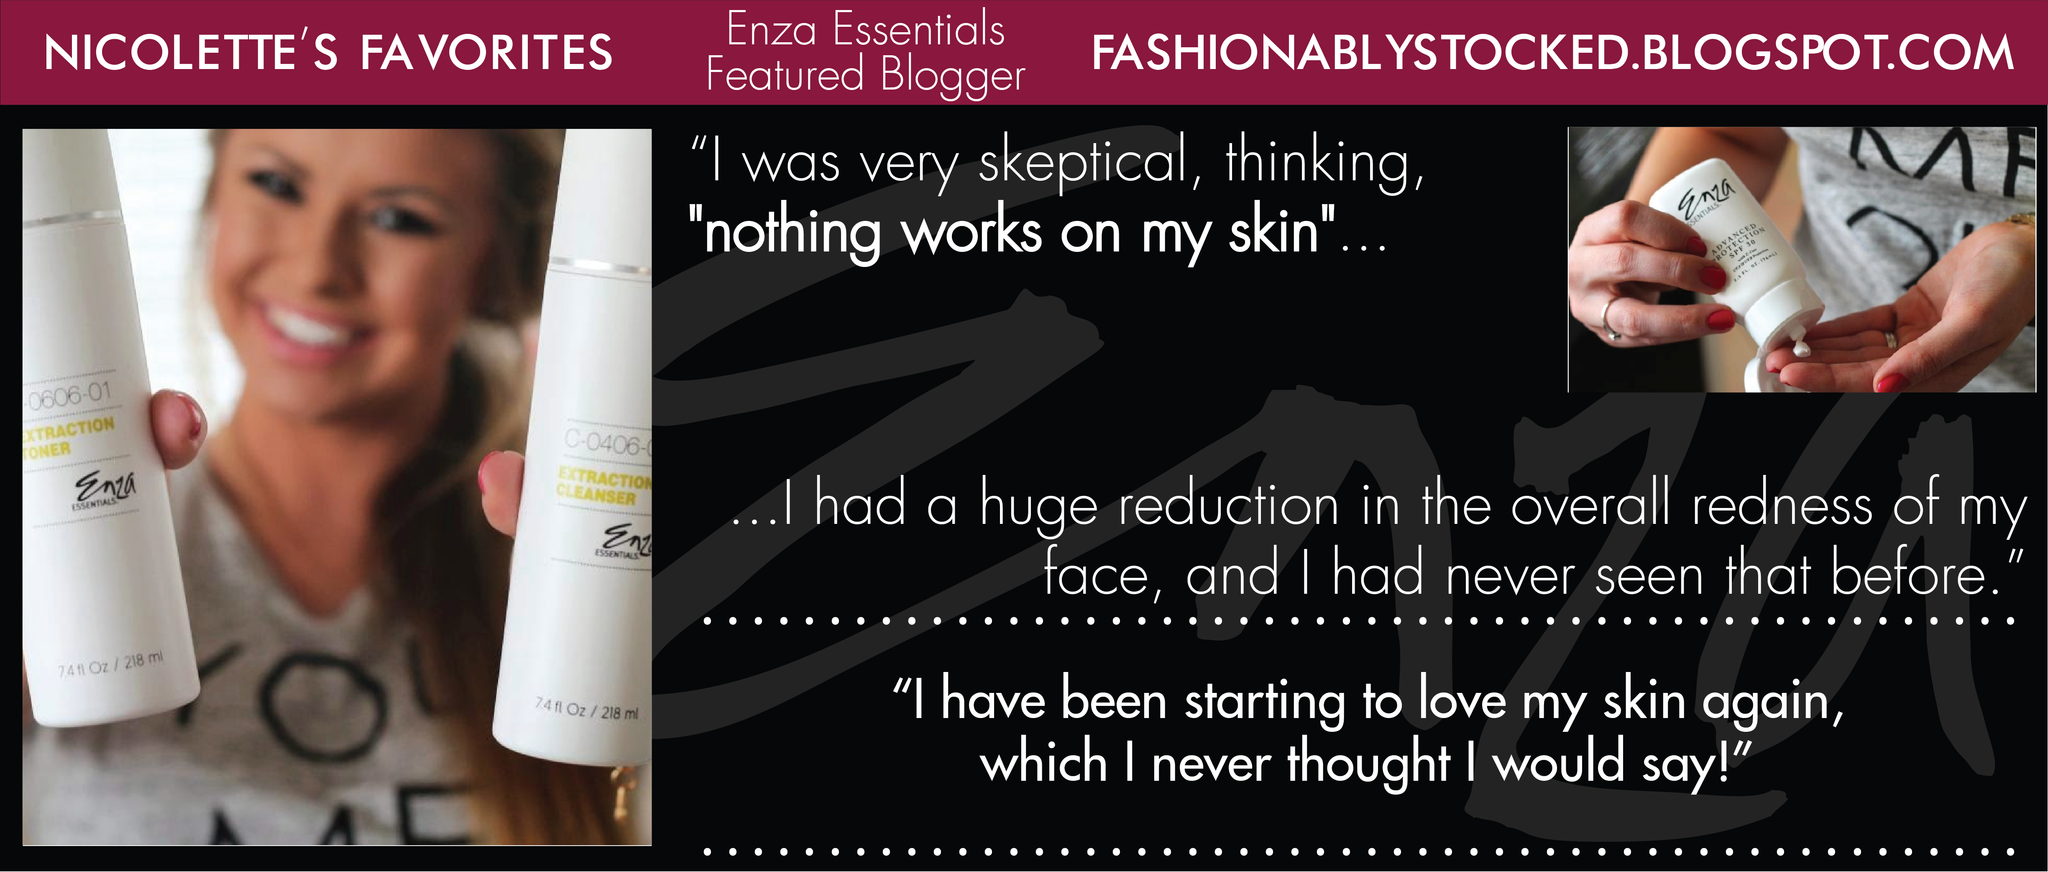 Enza Essentials Featured Blogger Nicolette Fashionably Stocked